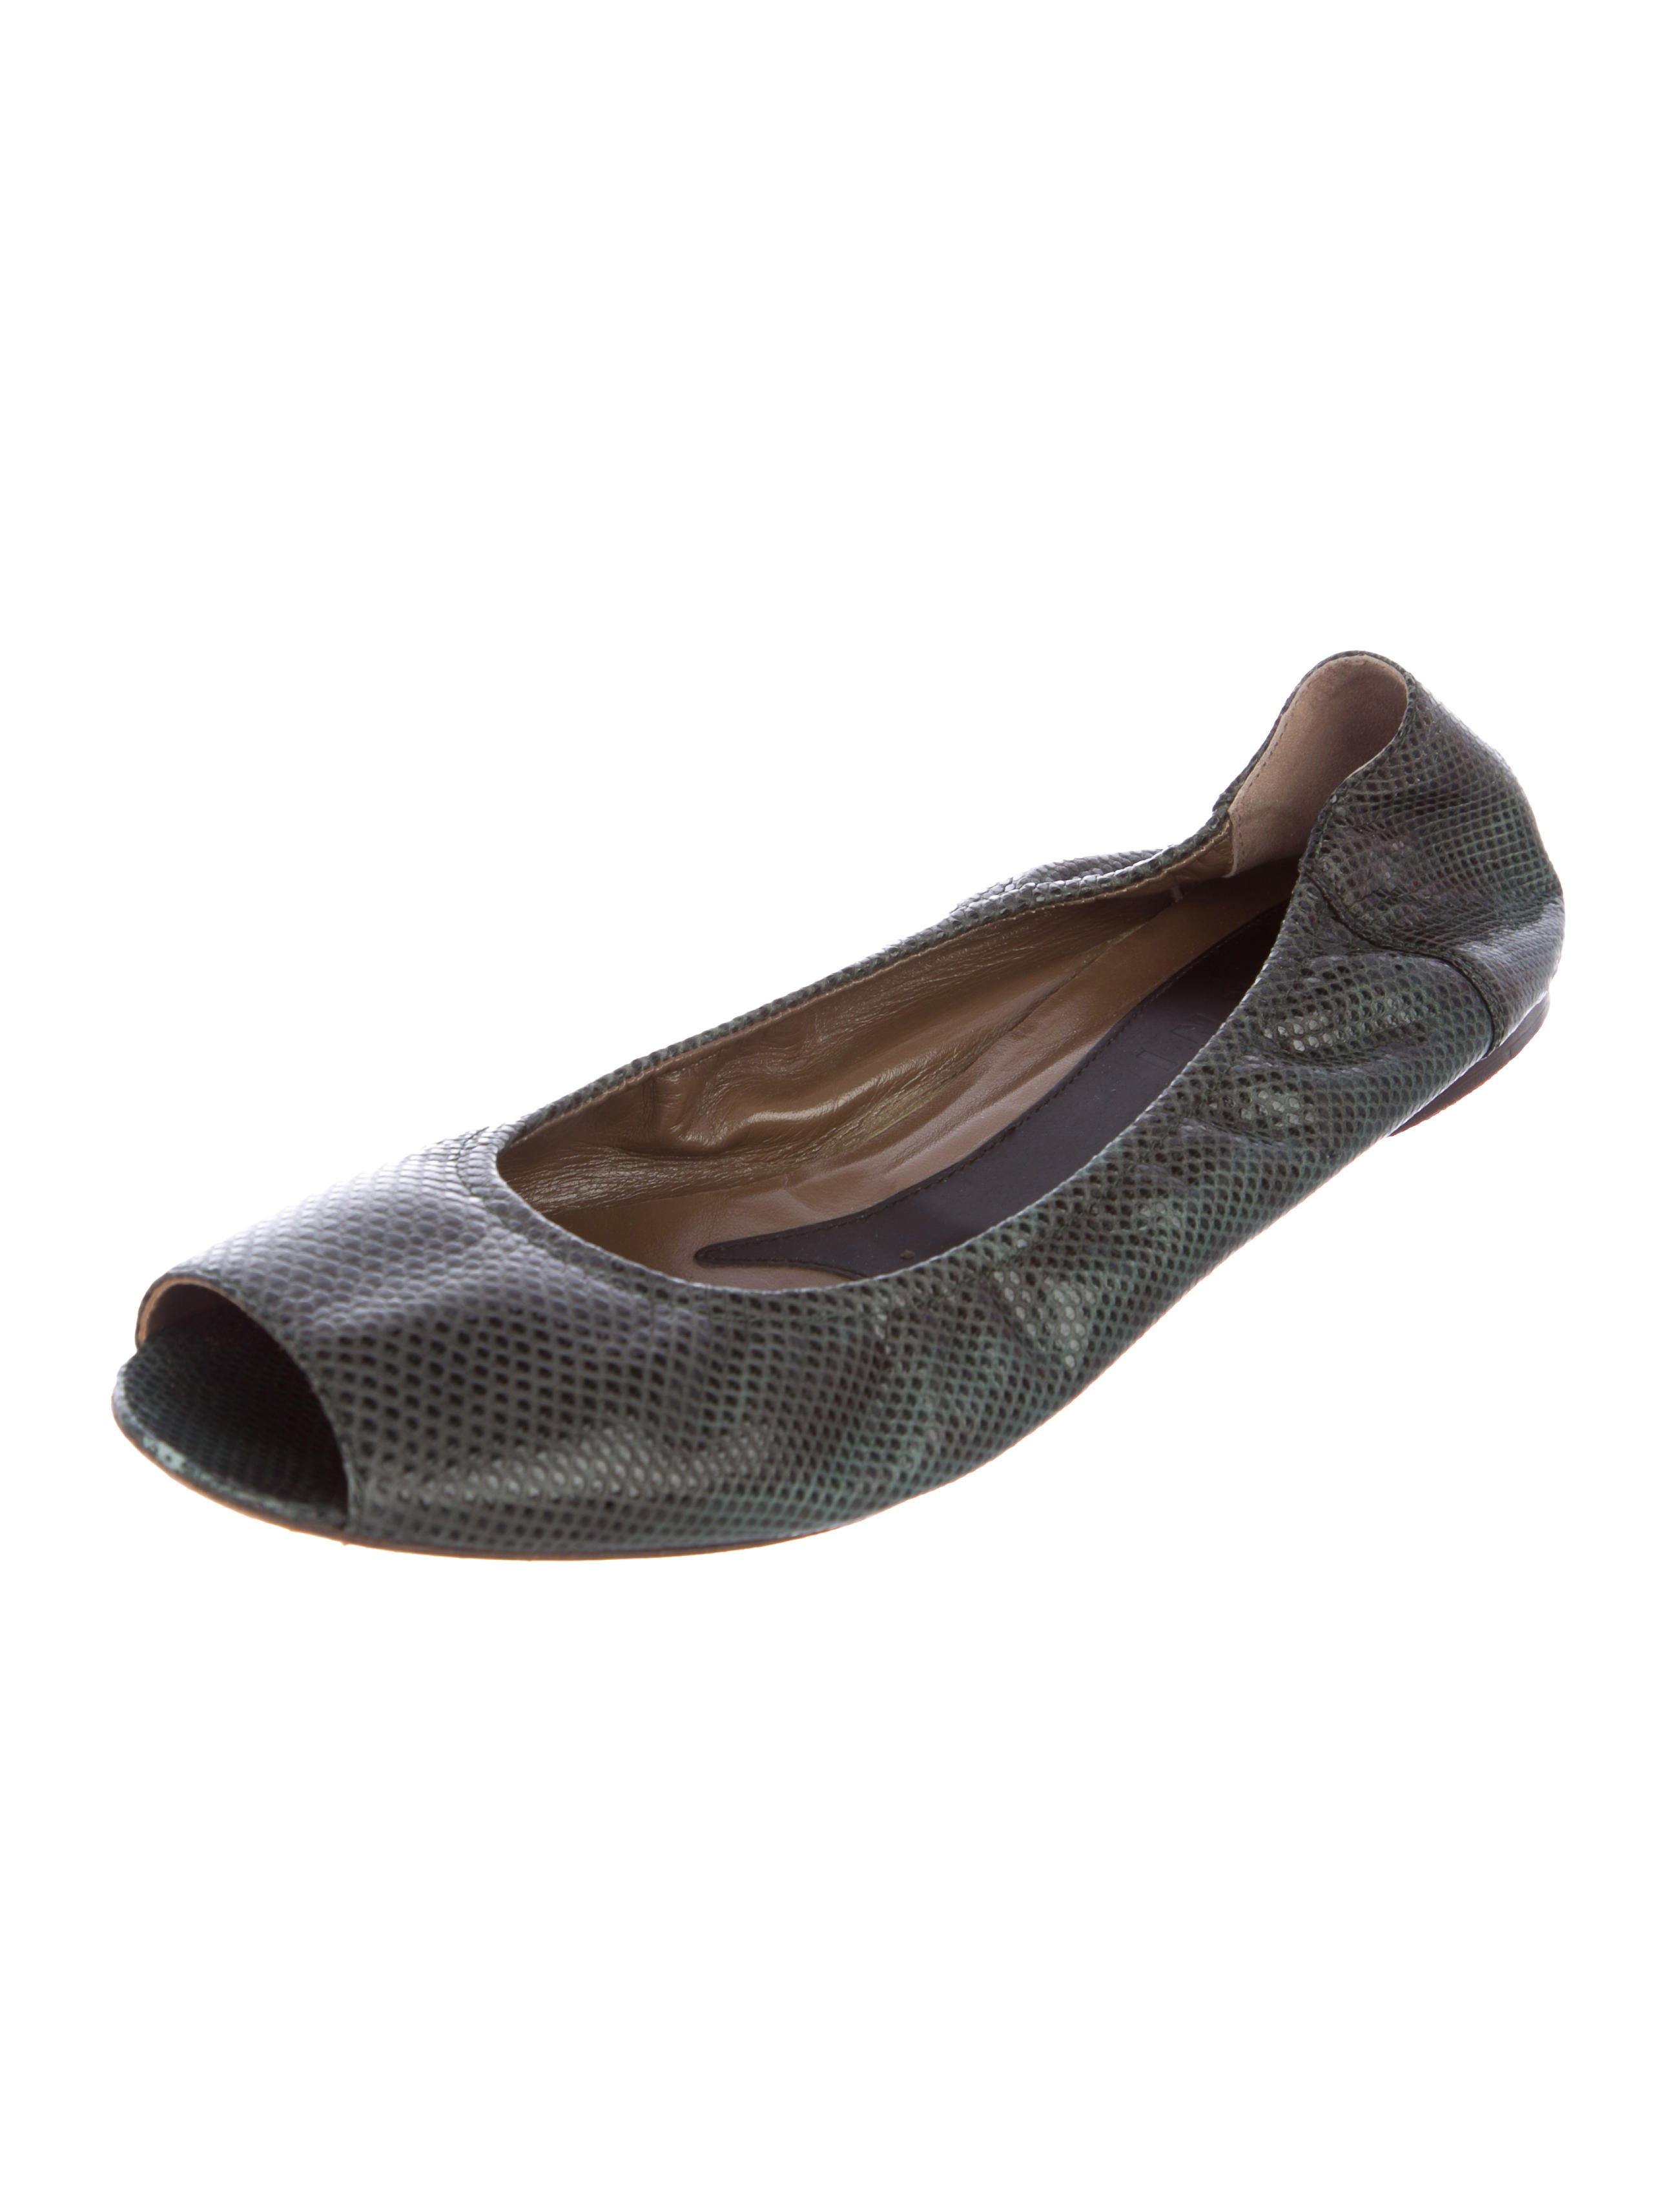 for sale online store Marni Karung Peep-Toe Flats clearance fast delivery pictures cheap online free shipping under $60 hMWf331